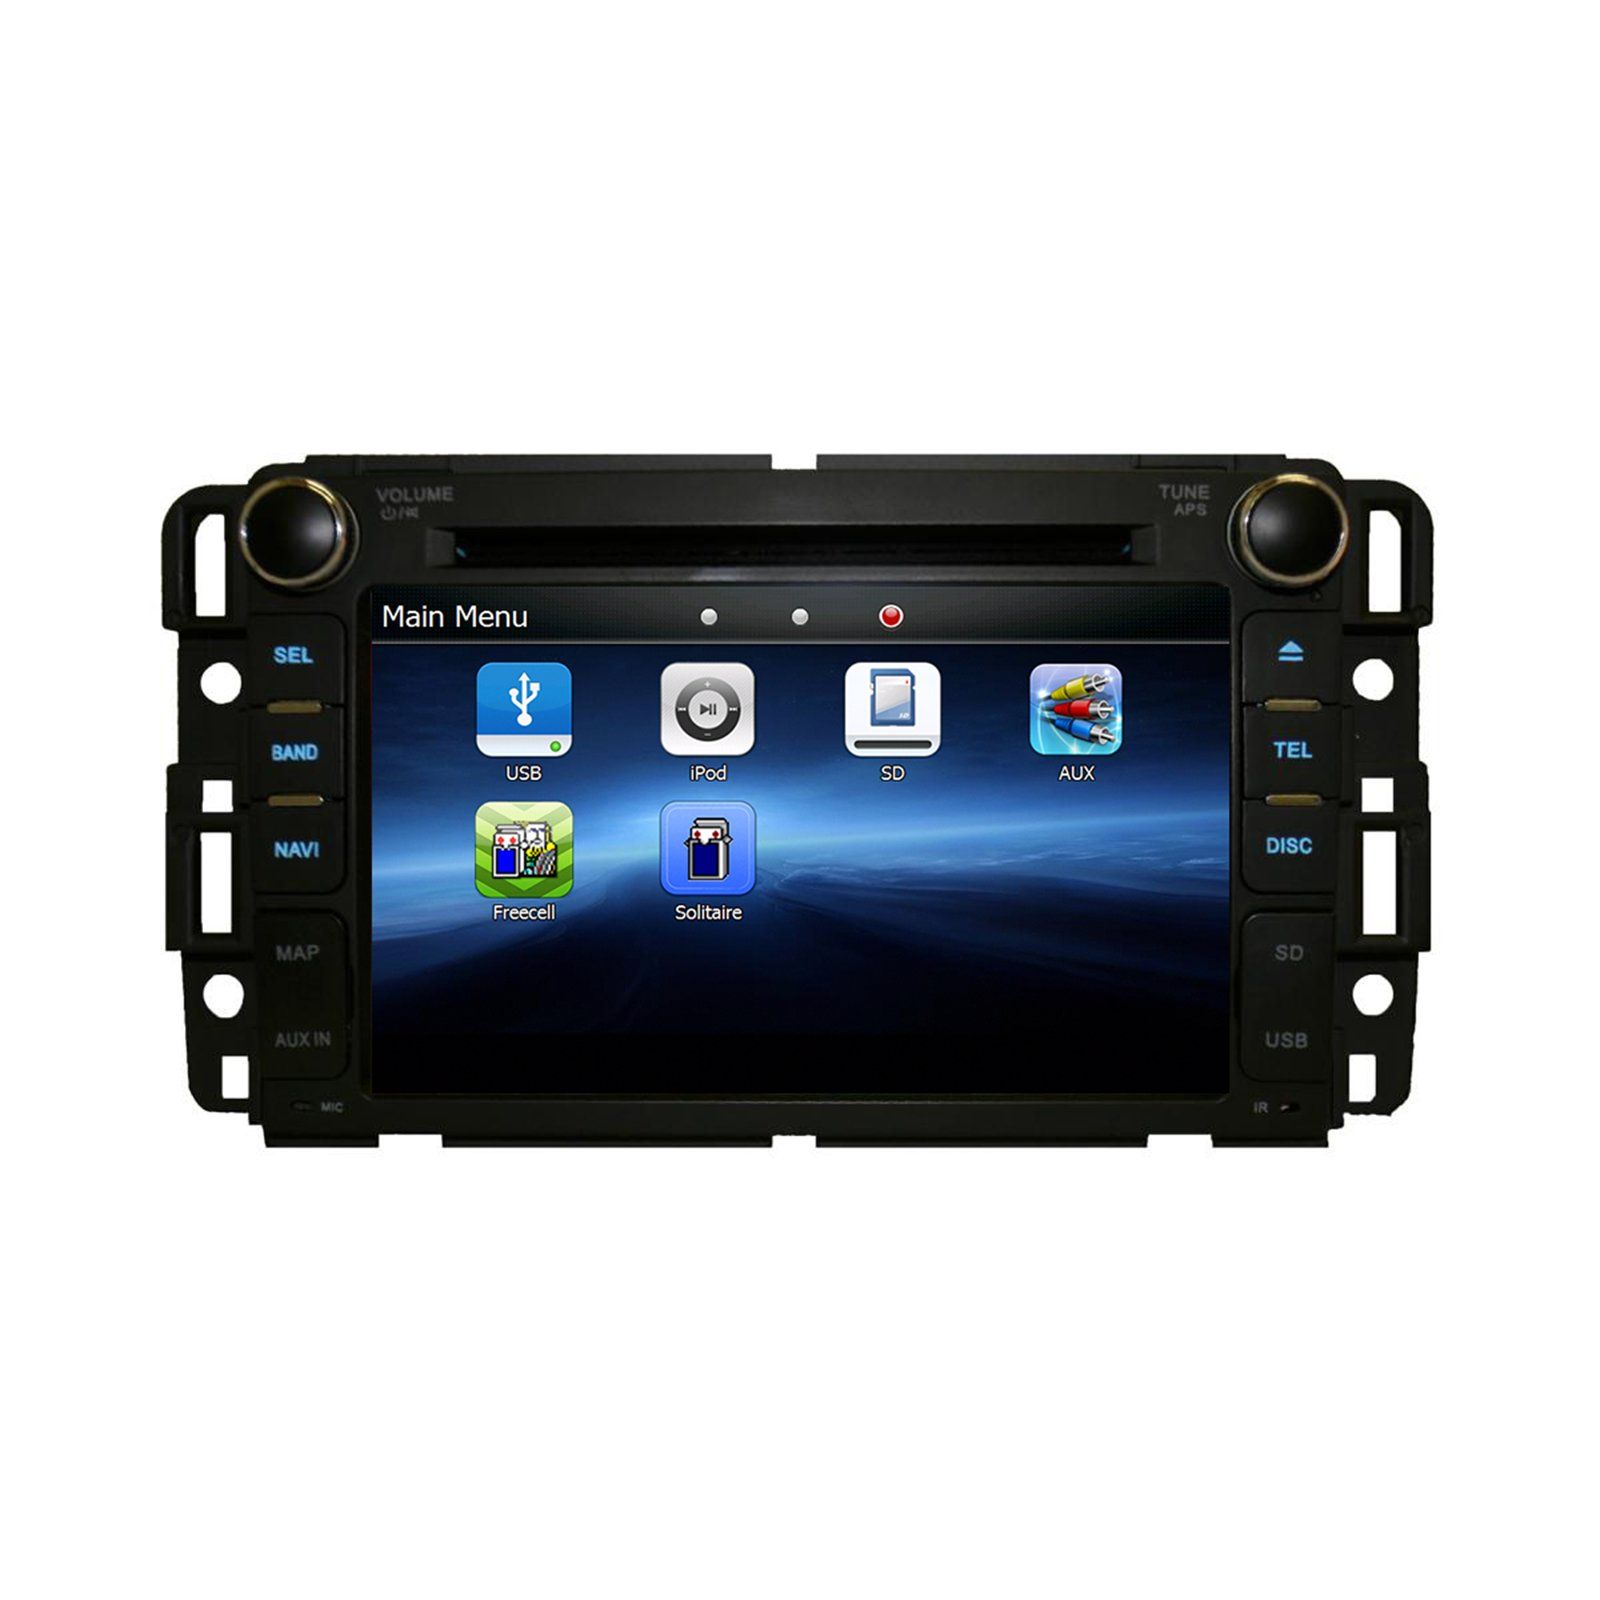 GMC SIERRA 2007-2013 K-SERIES IN DASH BLUETOOTH AM/FM RADIO GPS NAVIGATION TOUCHSCREEN DVD MP3 MP4 MULTIMEDIA SYSTEM - his unit will fit: GMC 07-13 Sierra GMC 07-12 Acadia GMC 07-11 Yukon Chevy 07-12 Silverado Chevy 08-11 Express Van Chevy 07-12 Suburban